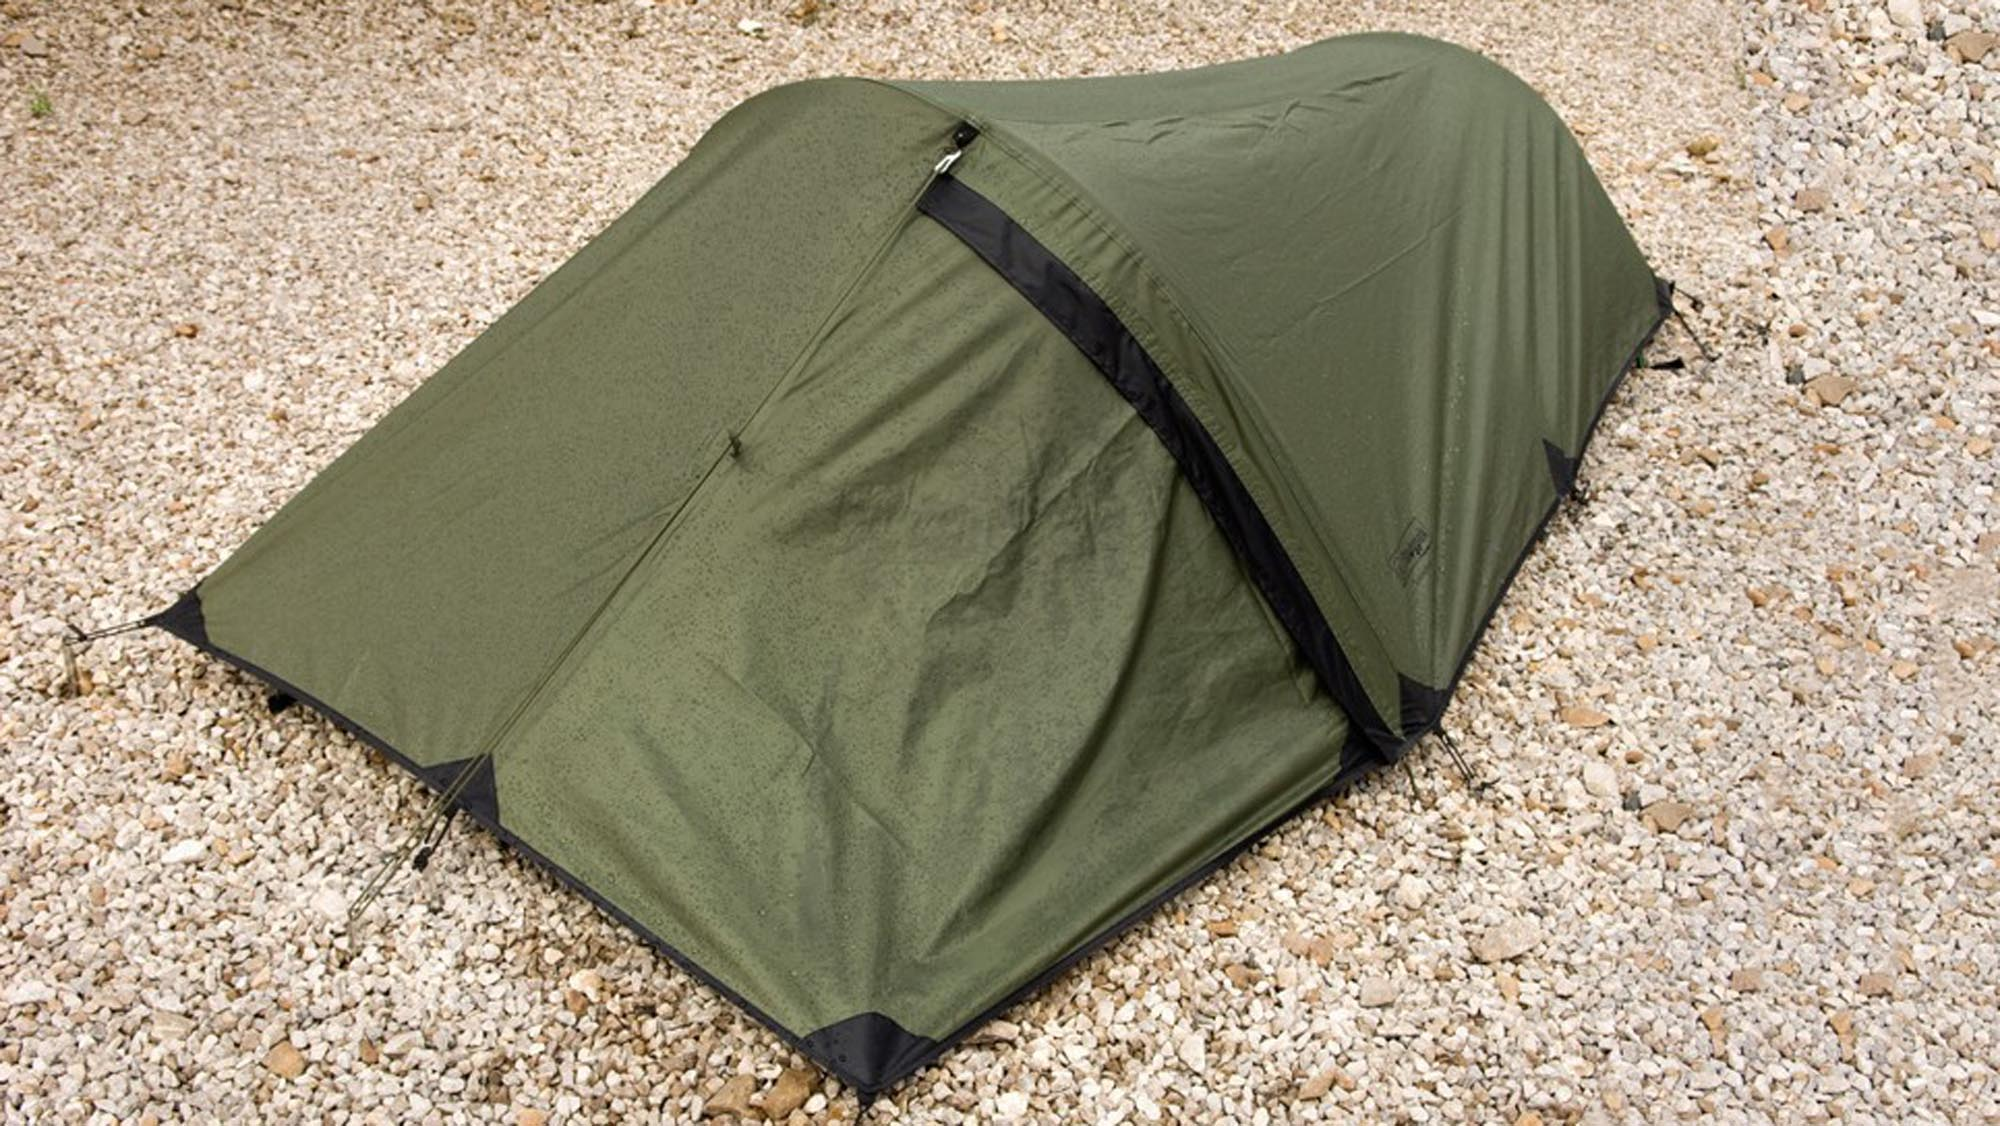 Snugpaku0027s Ionosphere bivvy tent is an essential for adventurers whether youu0027re setting out alone or as a group that doesnu0027t want to share a tent u2013 or have ... & Best tents: The best festival solo and backpacking tents from £25 ...